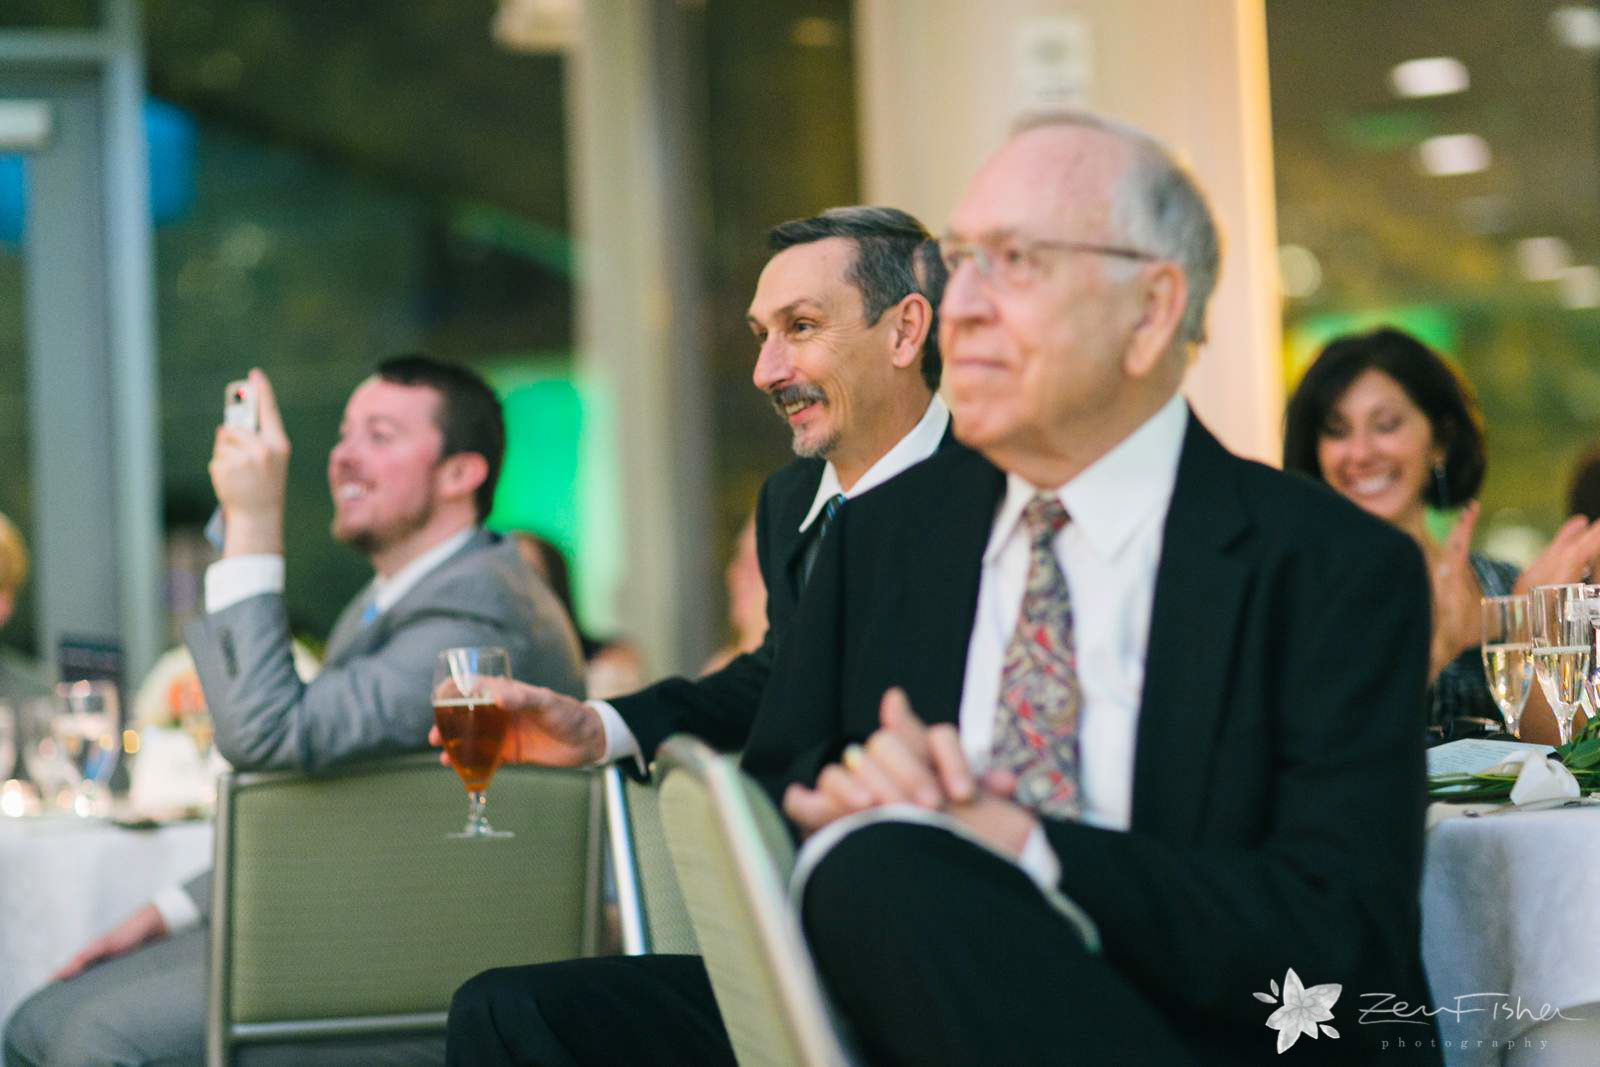 Father of the groom reacting to toasts during wedding reception.